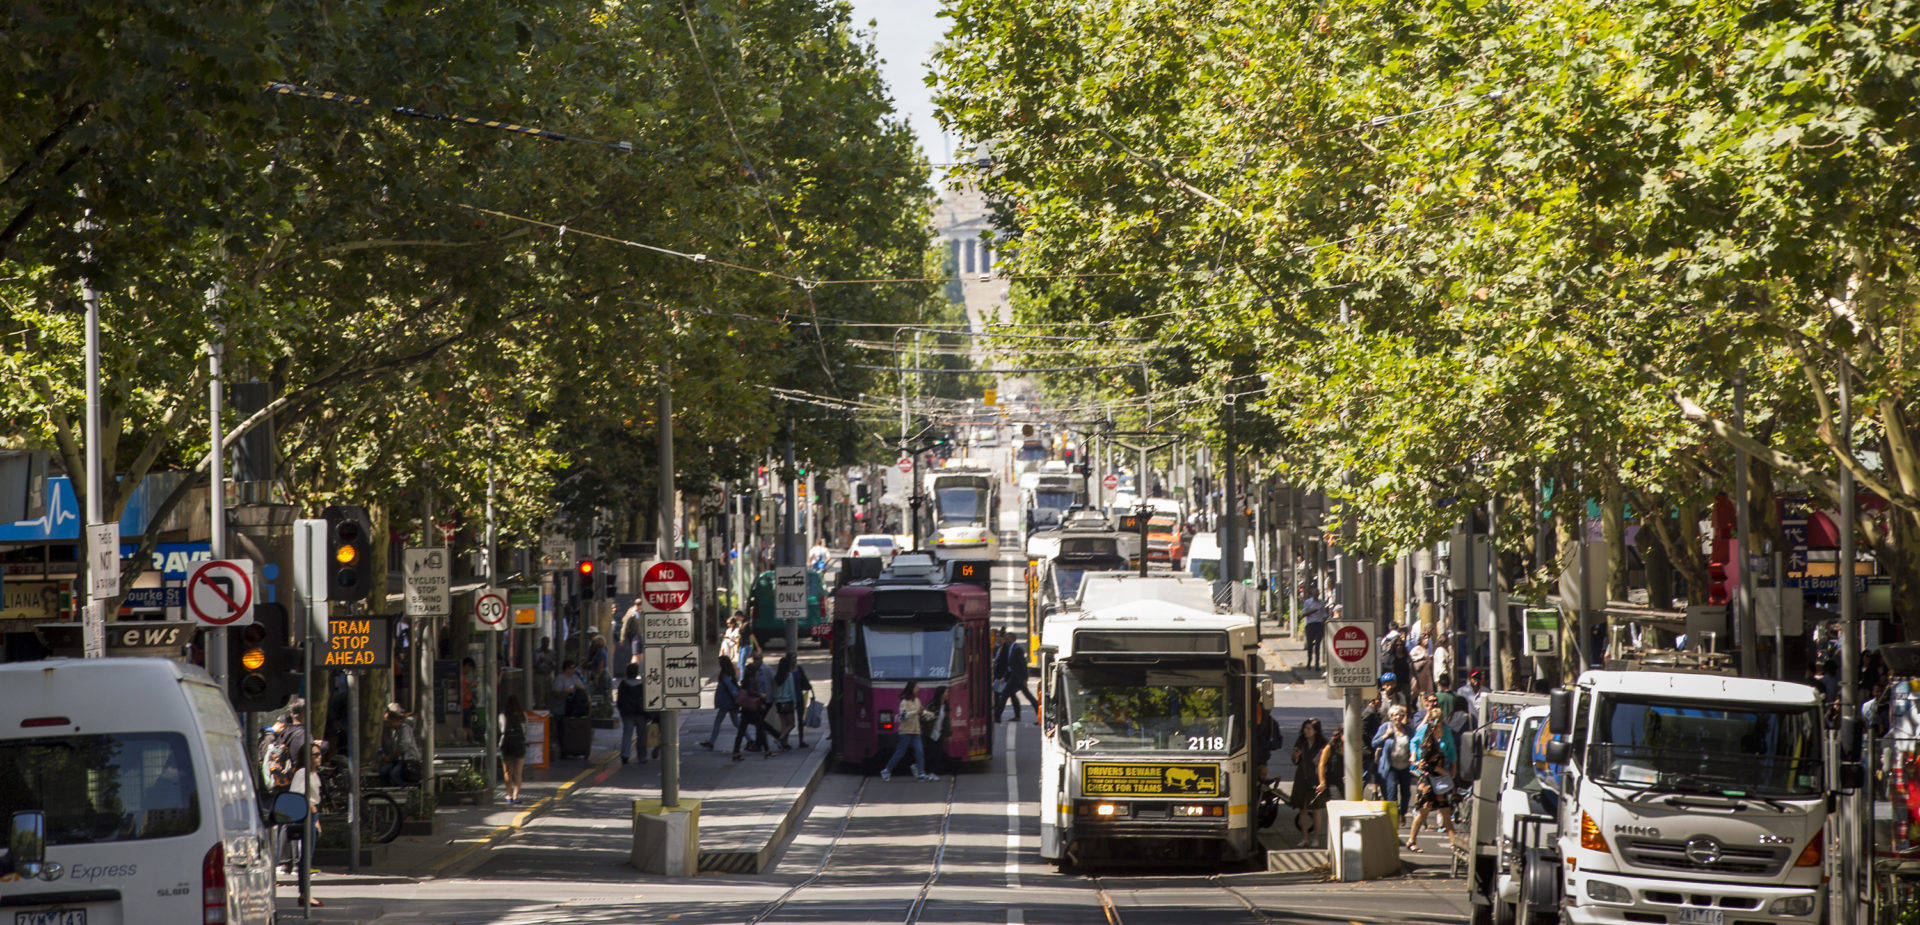 Forested street in Melbourne. Photo copyright: K. Hertzog